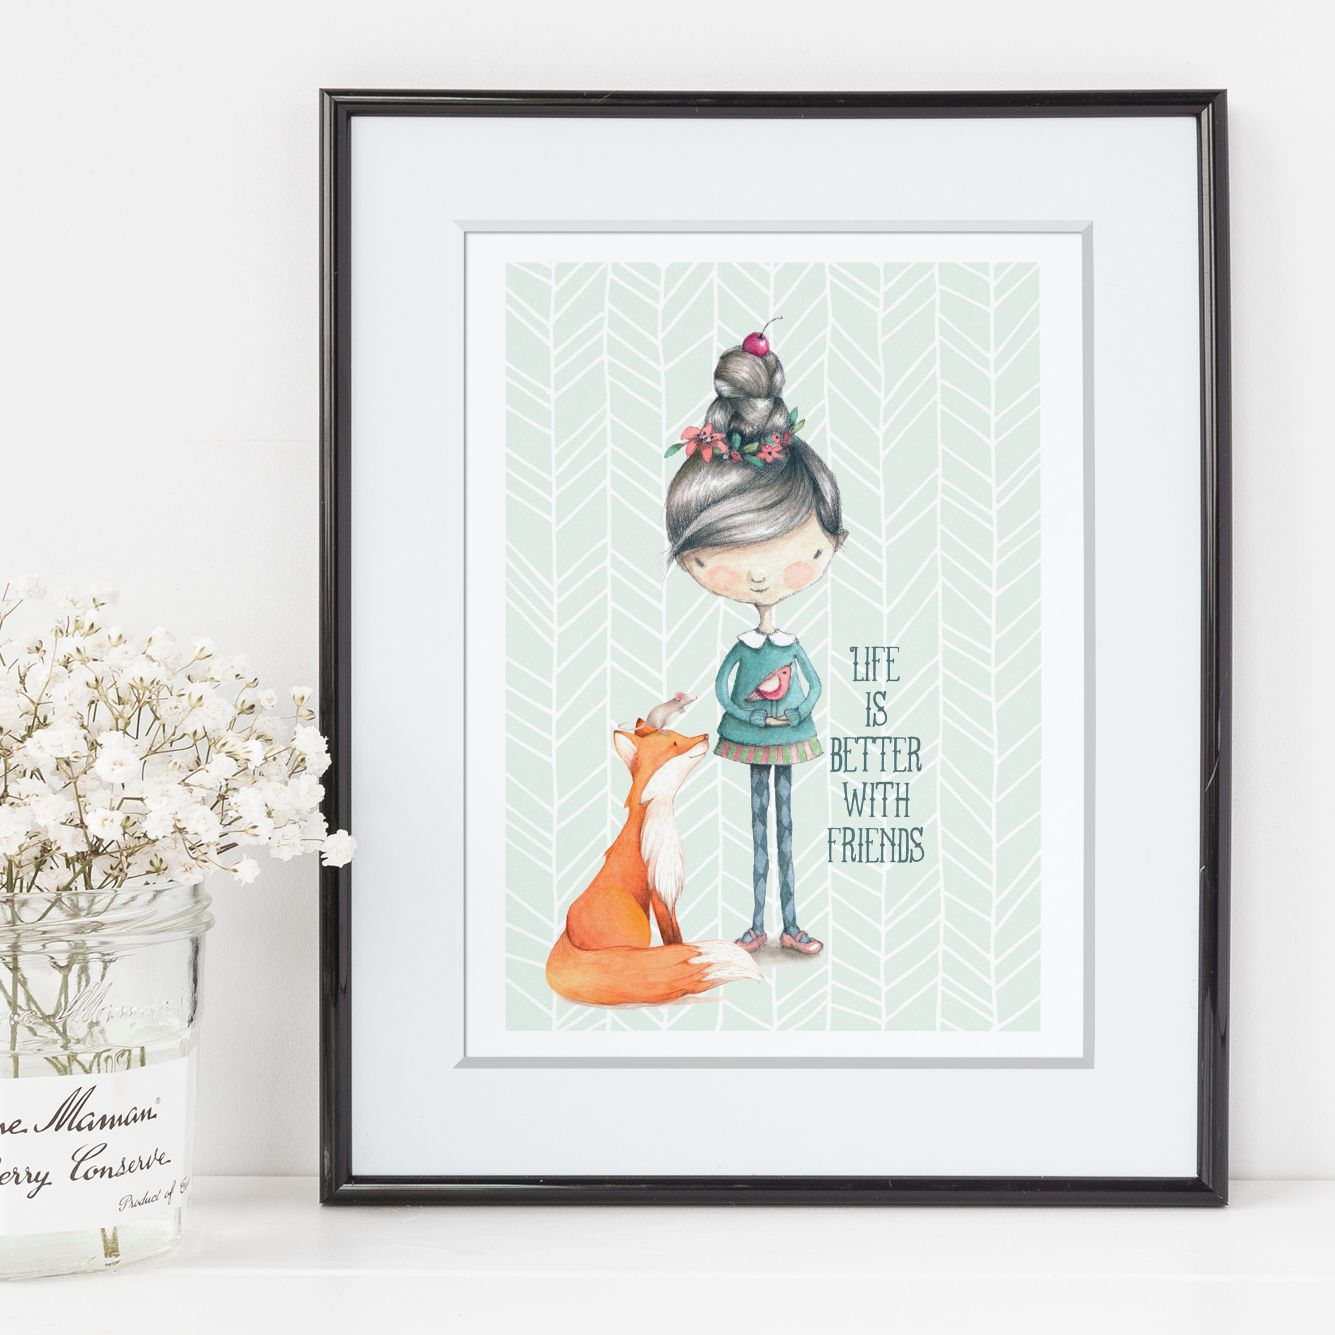 Better with Friends art print | made to order wall art from PhotoFairytales